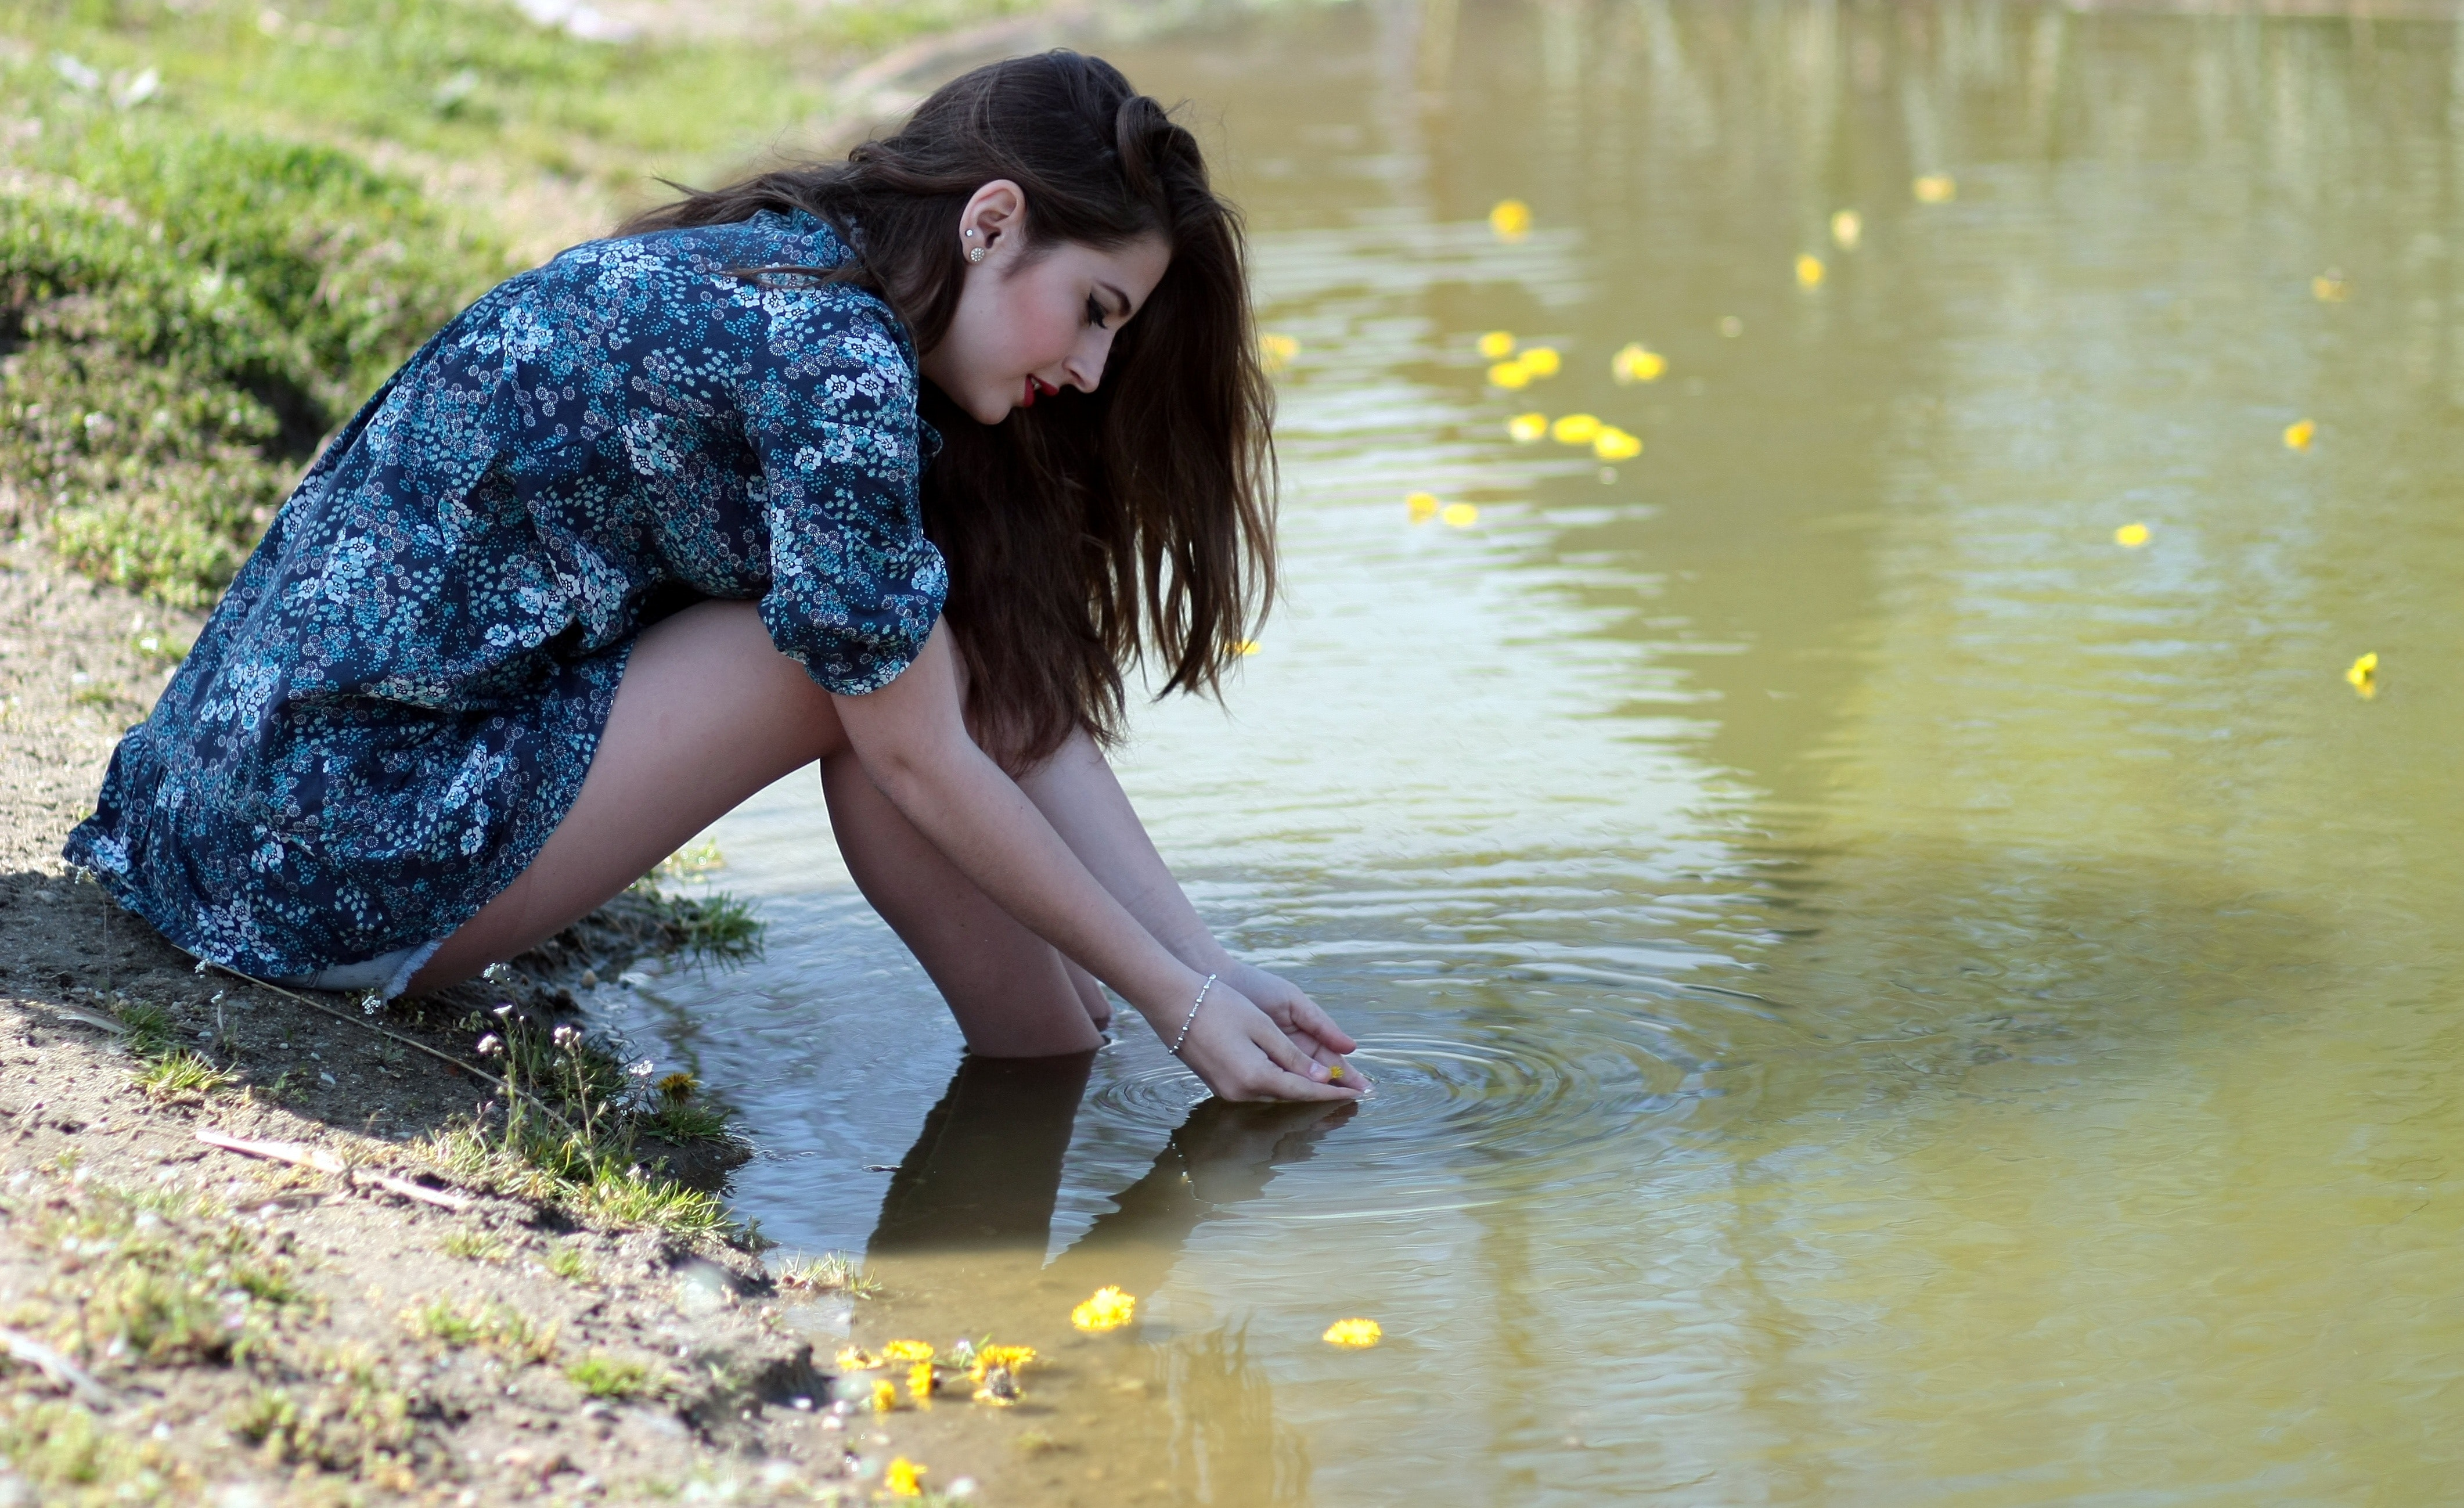 Woman soaking her feet on body of water during daytime photo